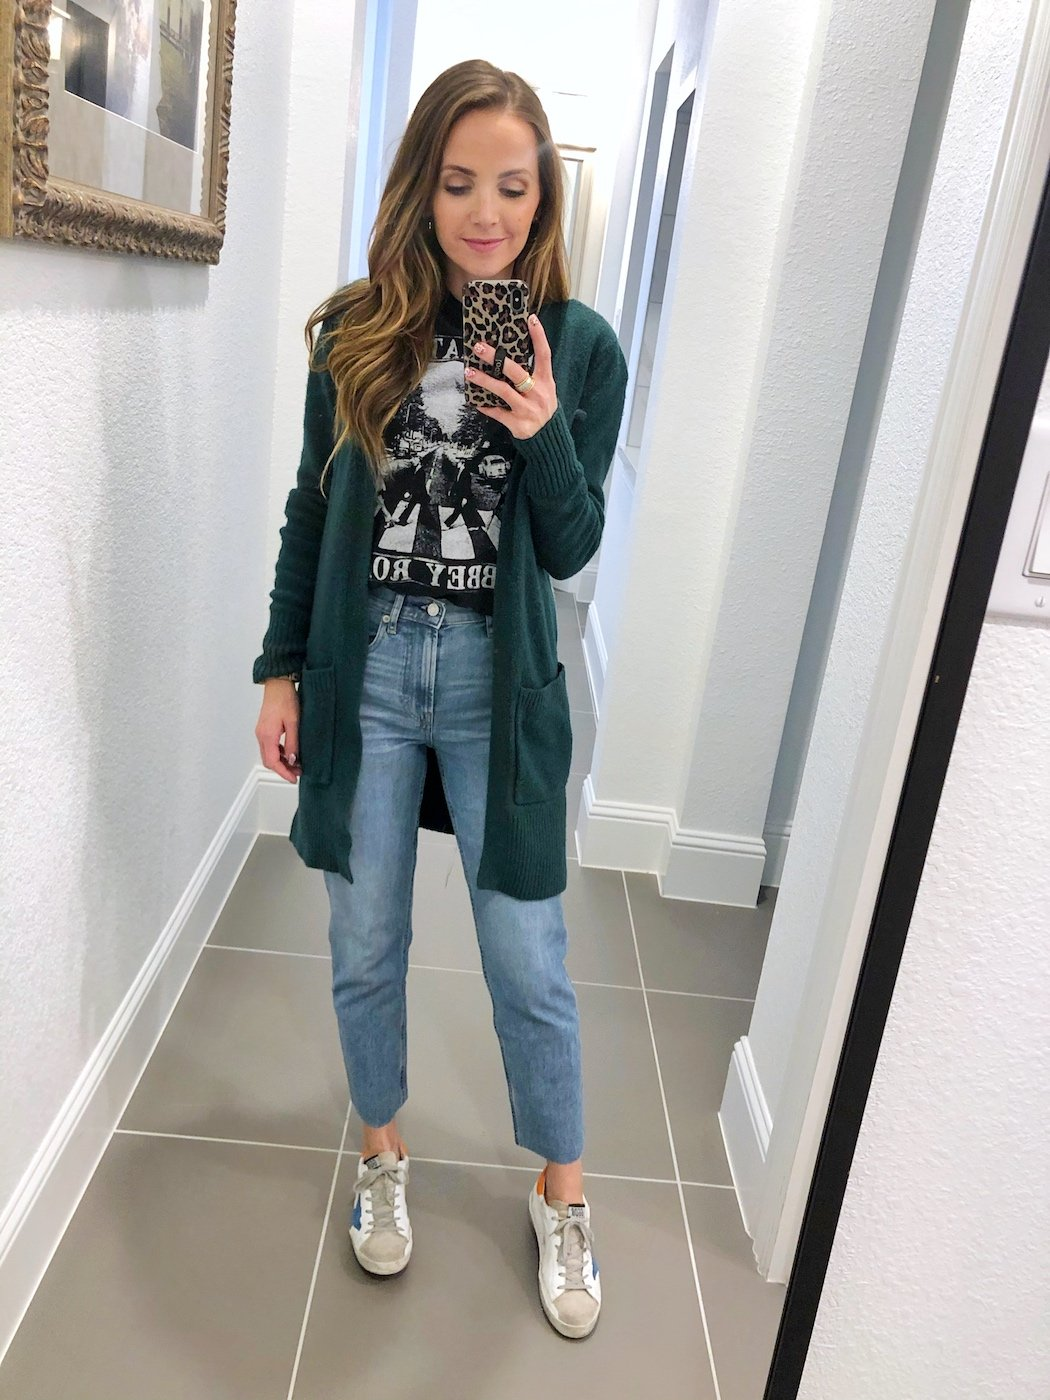 cardigan outfits with mom jeans and graphic tee